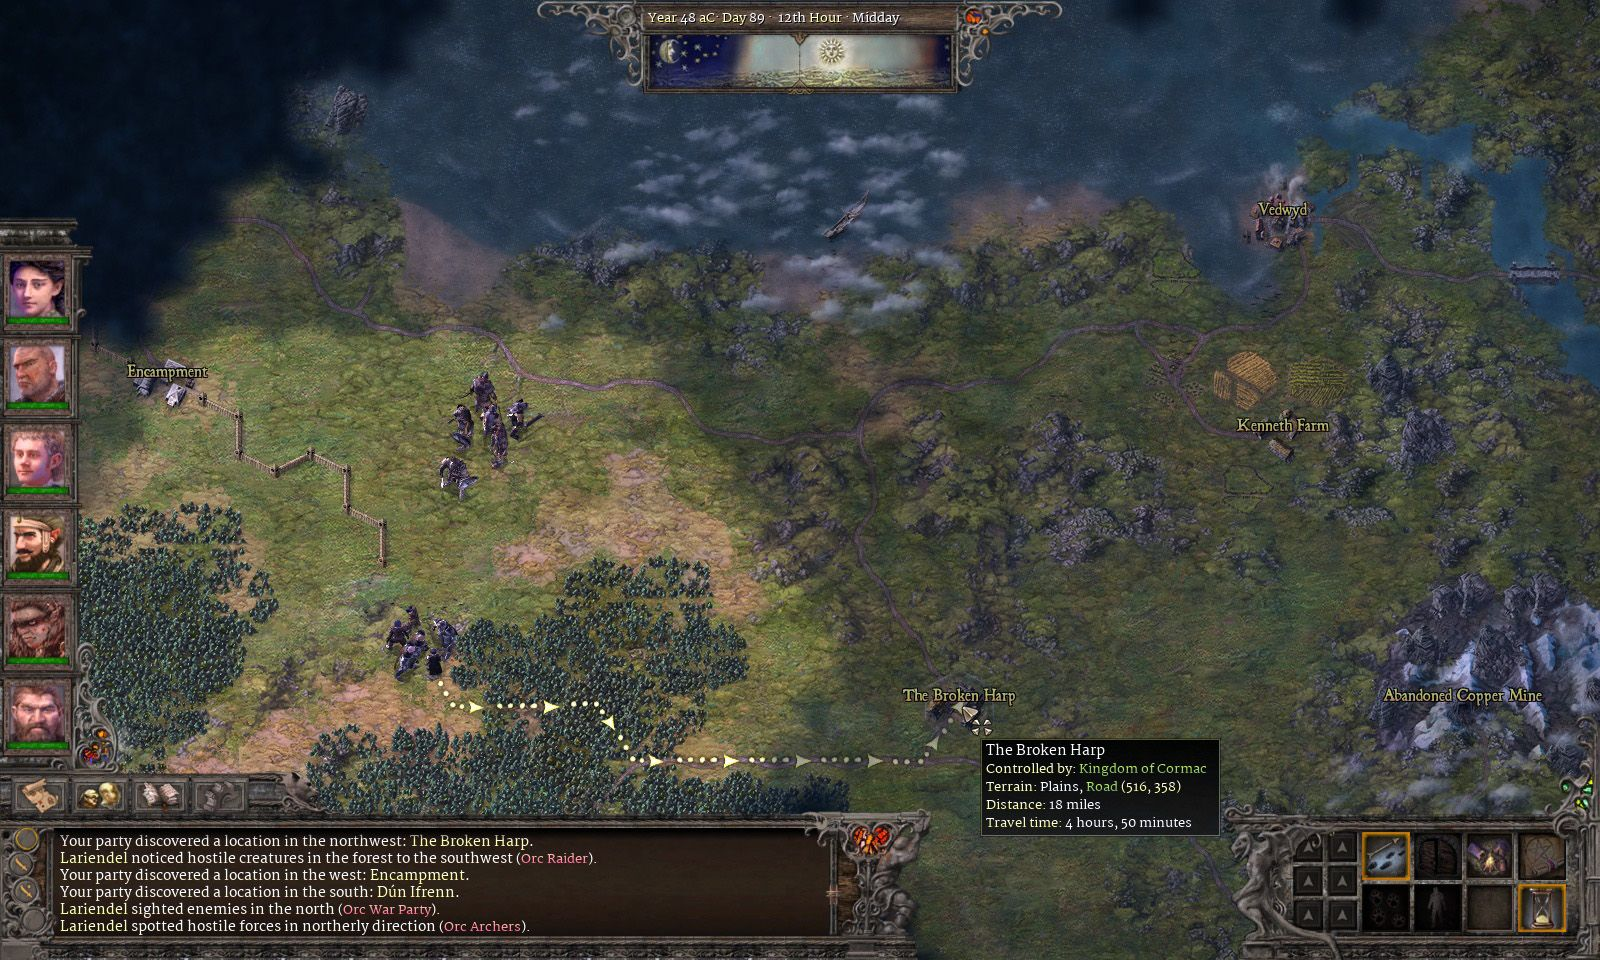 rb screenshot 0831 worldmap01 - Realms Beyond: Ashes of the